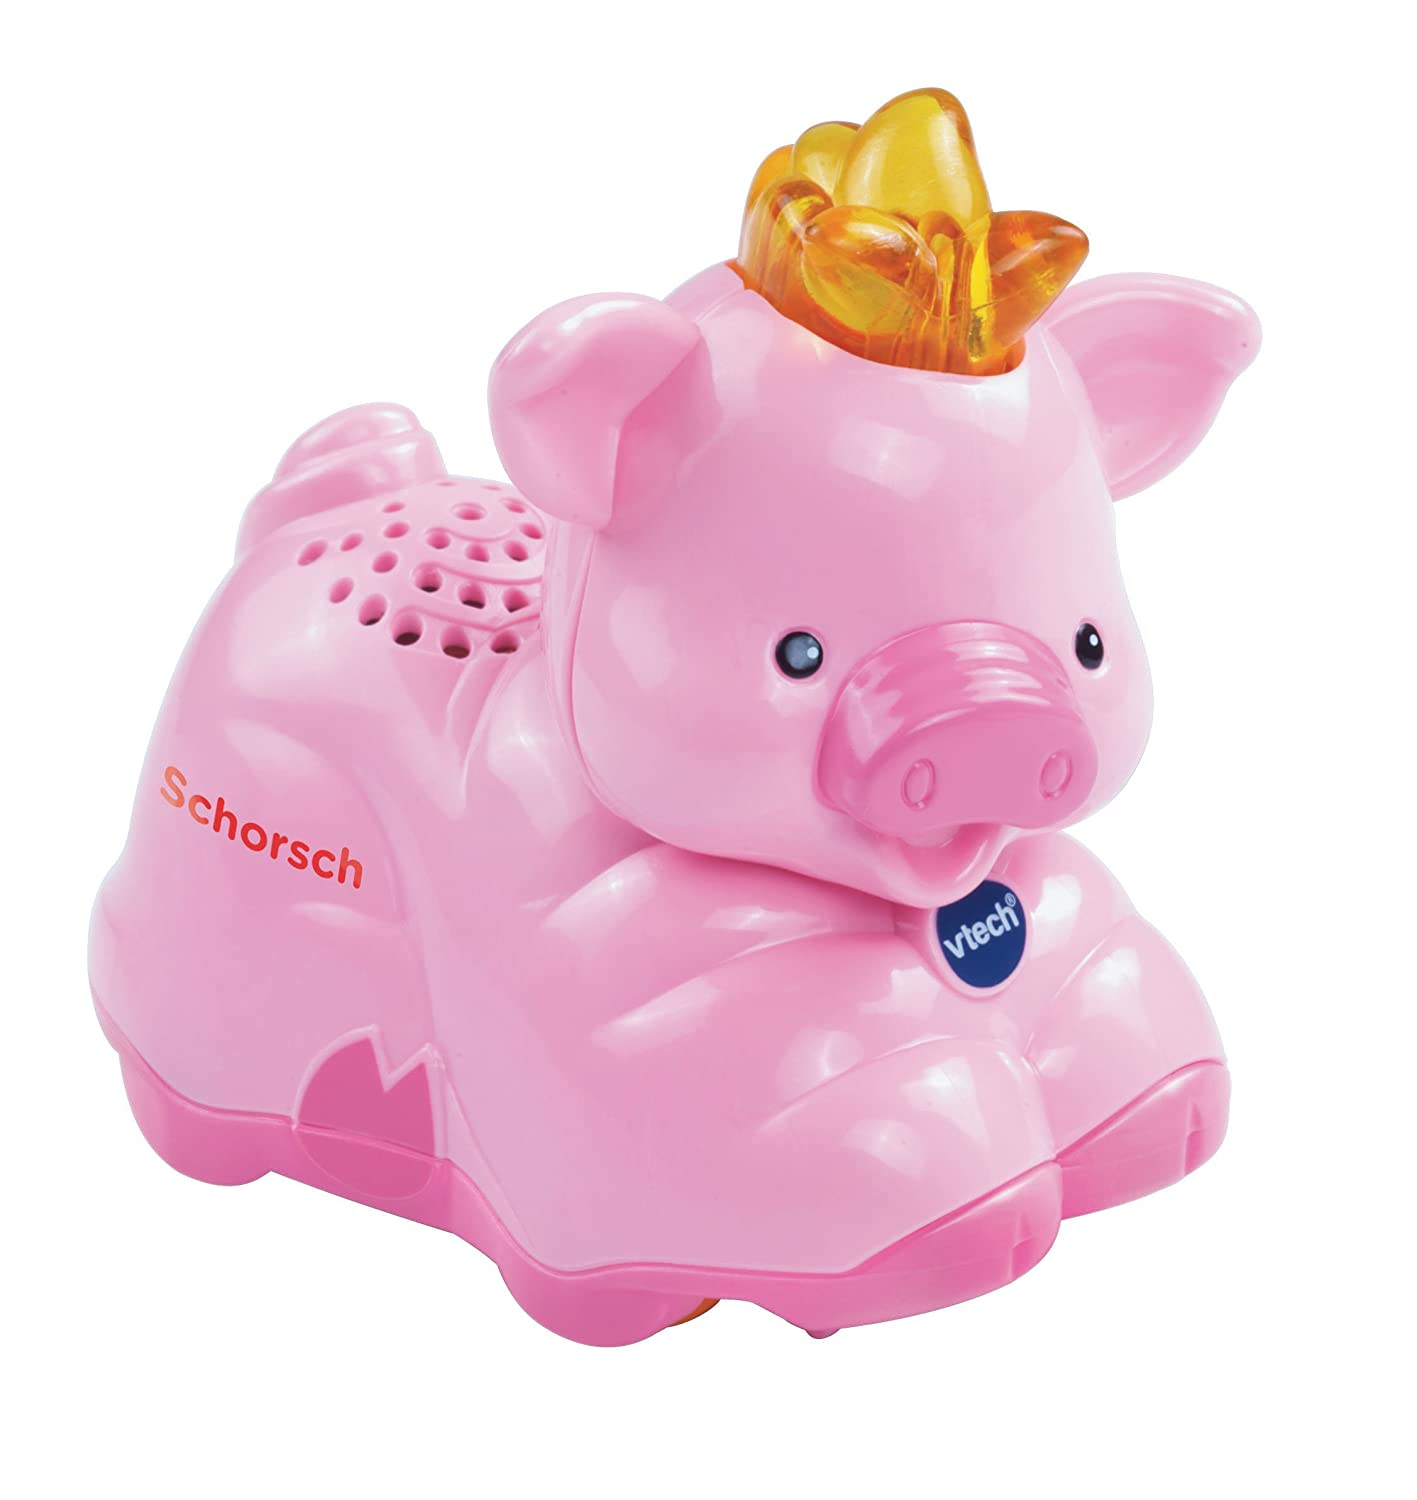 Katze VTech Baby 80-188504 rot Tip Tap Tiere